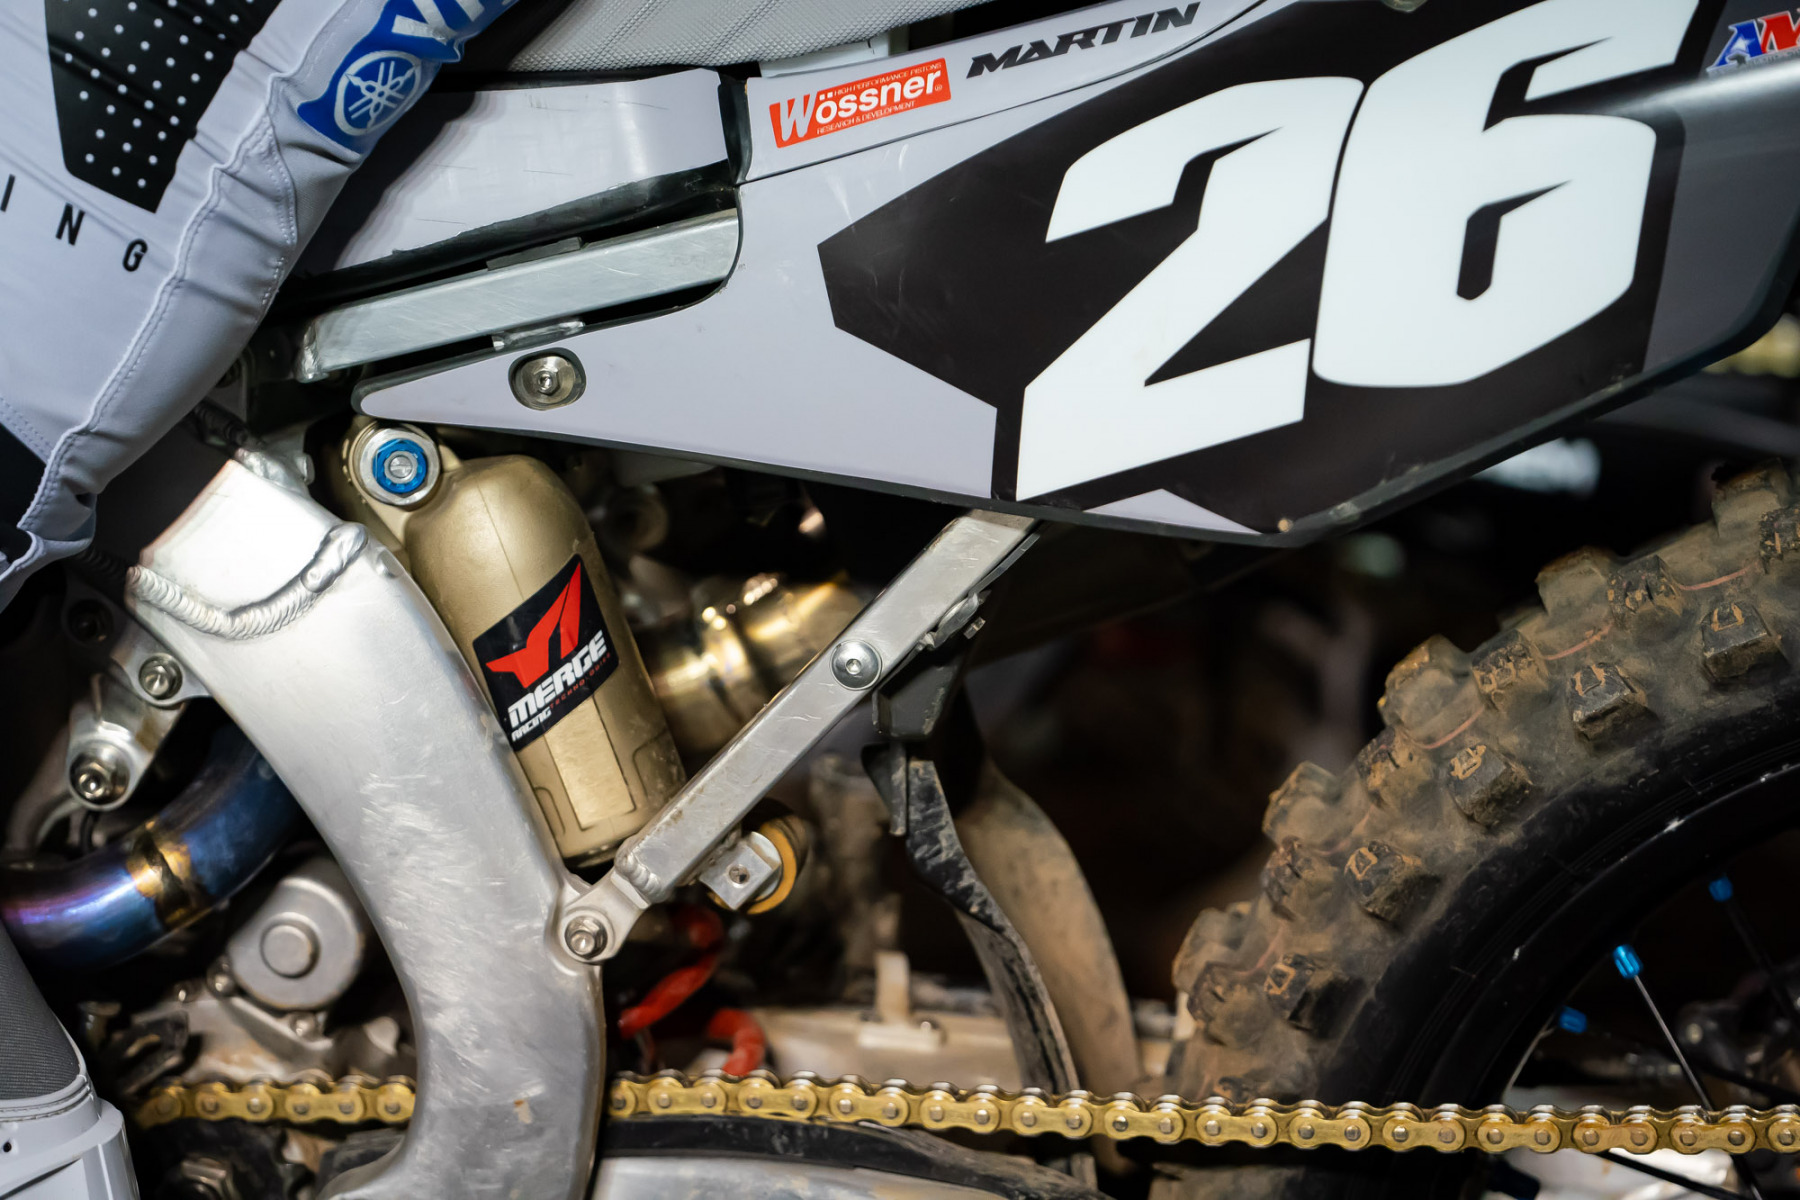 2021-ORLANDO-TWO-SUPERCROSS_KICKSTART_1548